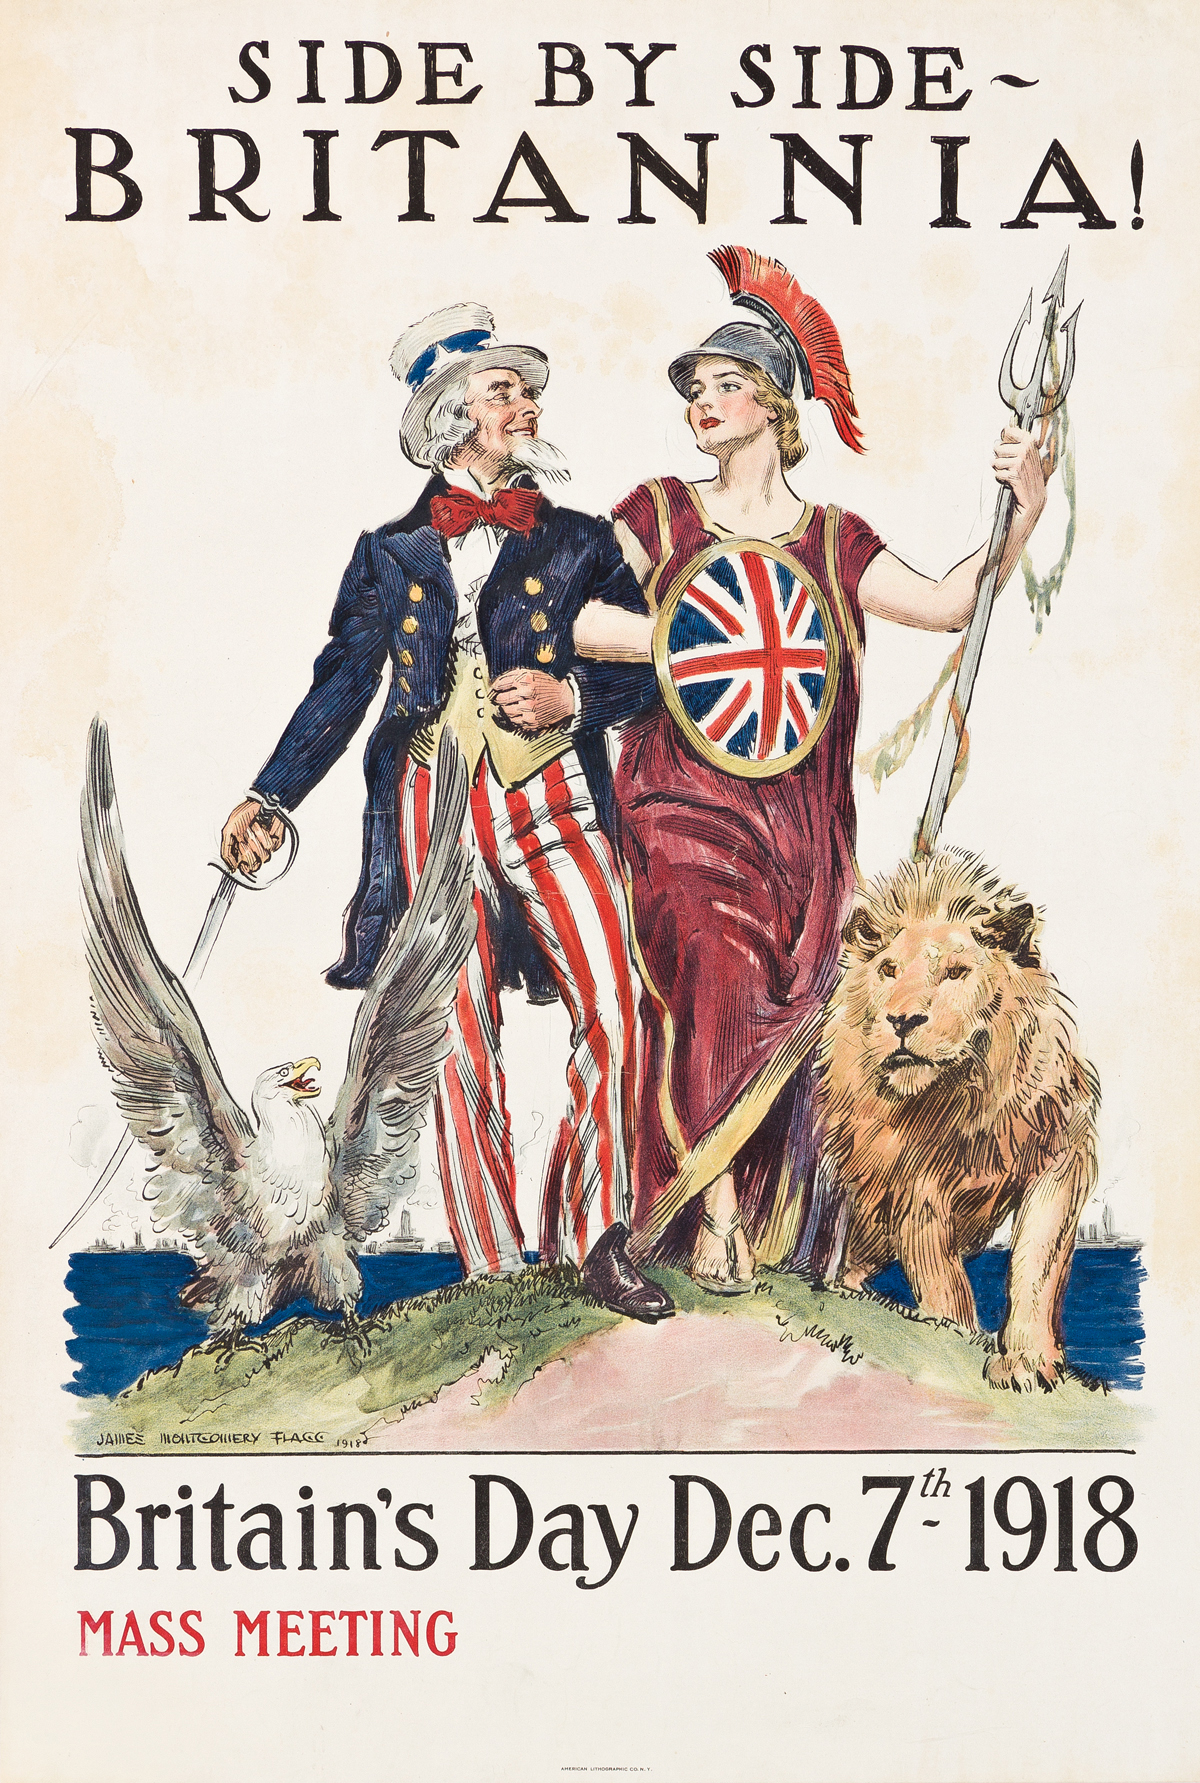 JAMES MONTGOMERY FLAGG (1870-1960).  SIDE BY SIDE - BRITANNIA! / BRITAINS DAY. 1918. 30x20¼ inches, 76¼x51½ cm. American Lithographic